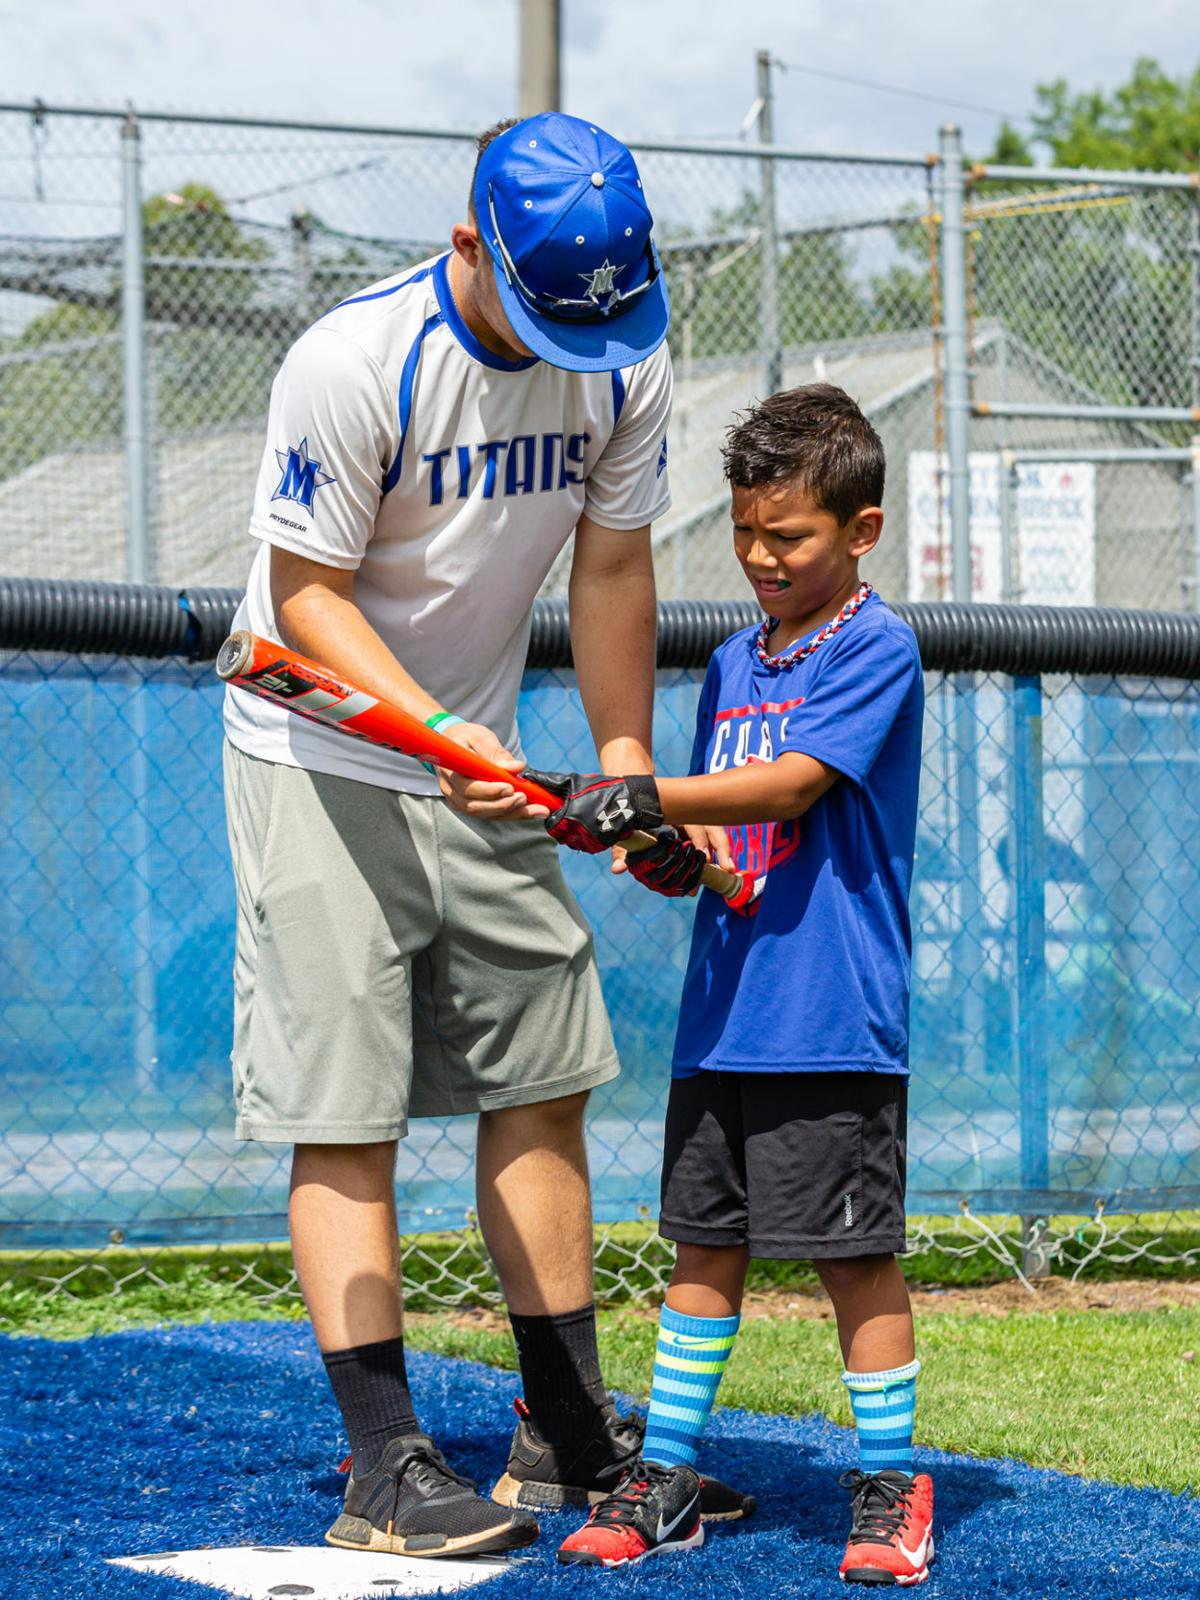 sports-web mhs baseball camp1.jpg